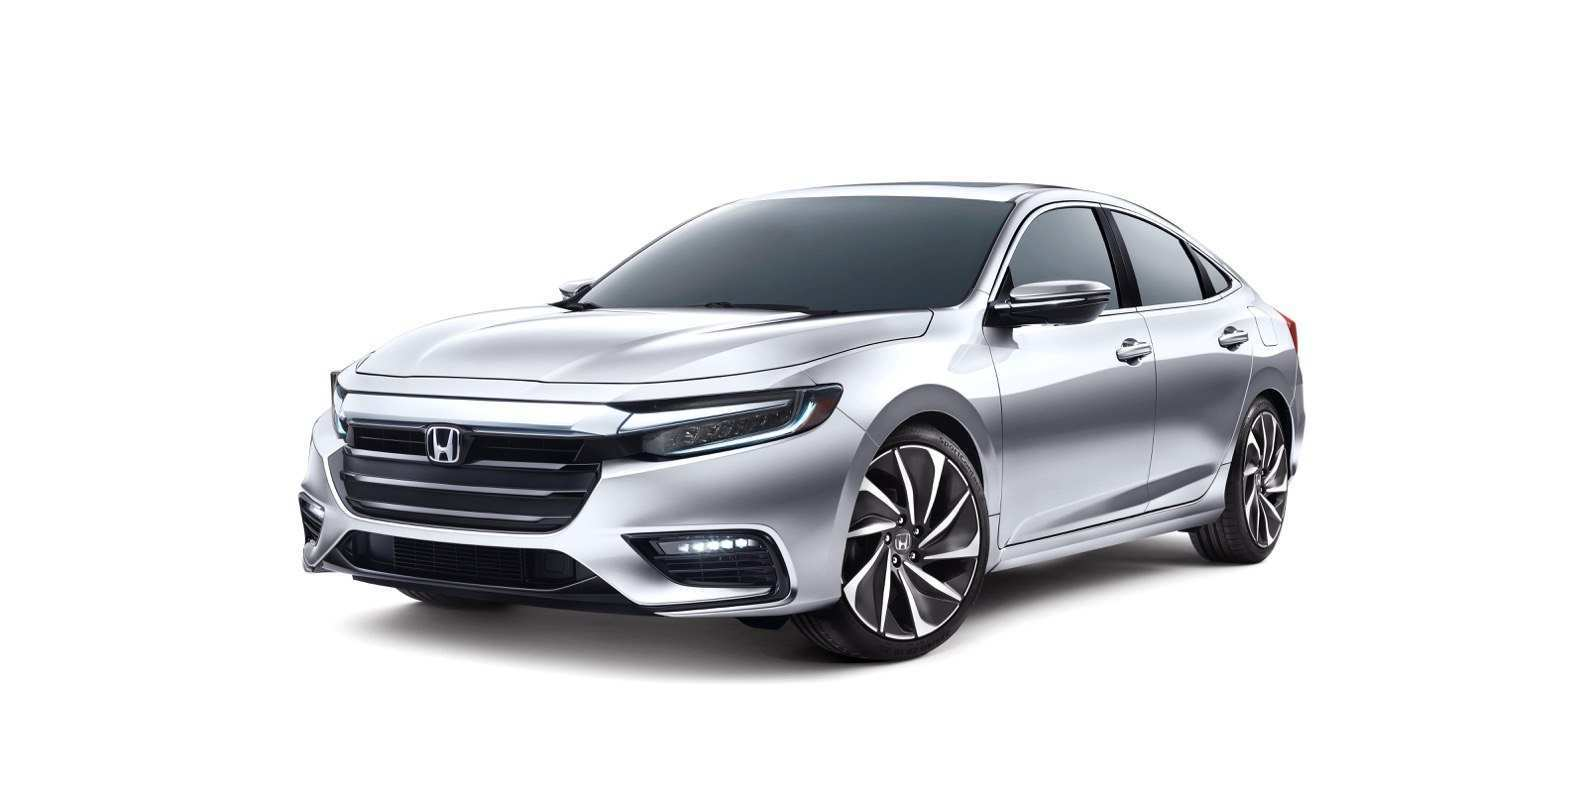 97 All New New Honda Accord Hybrid 2019 Price And Release Date Specs by New Honda Accord Hybrid 2019 Price And Release Date